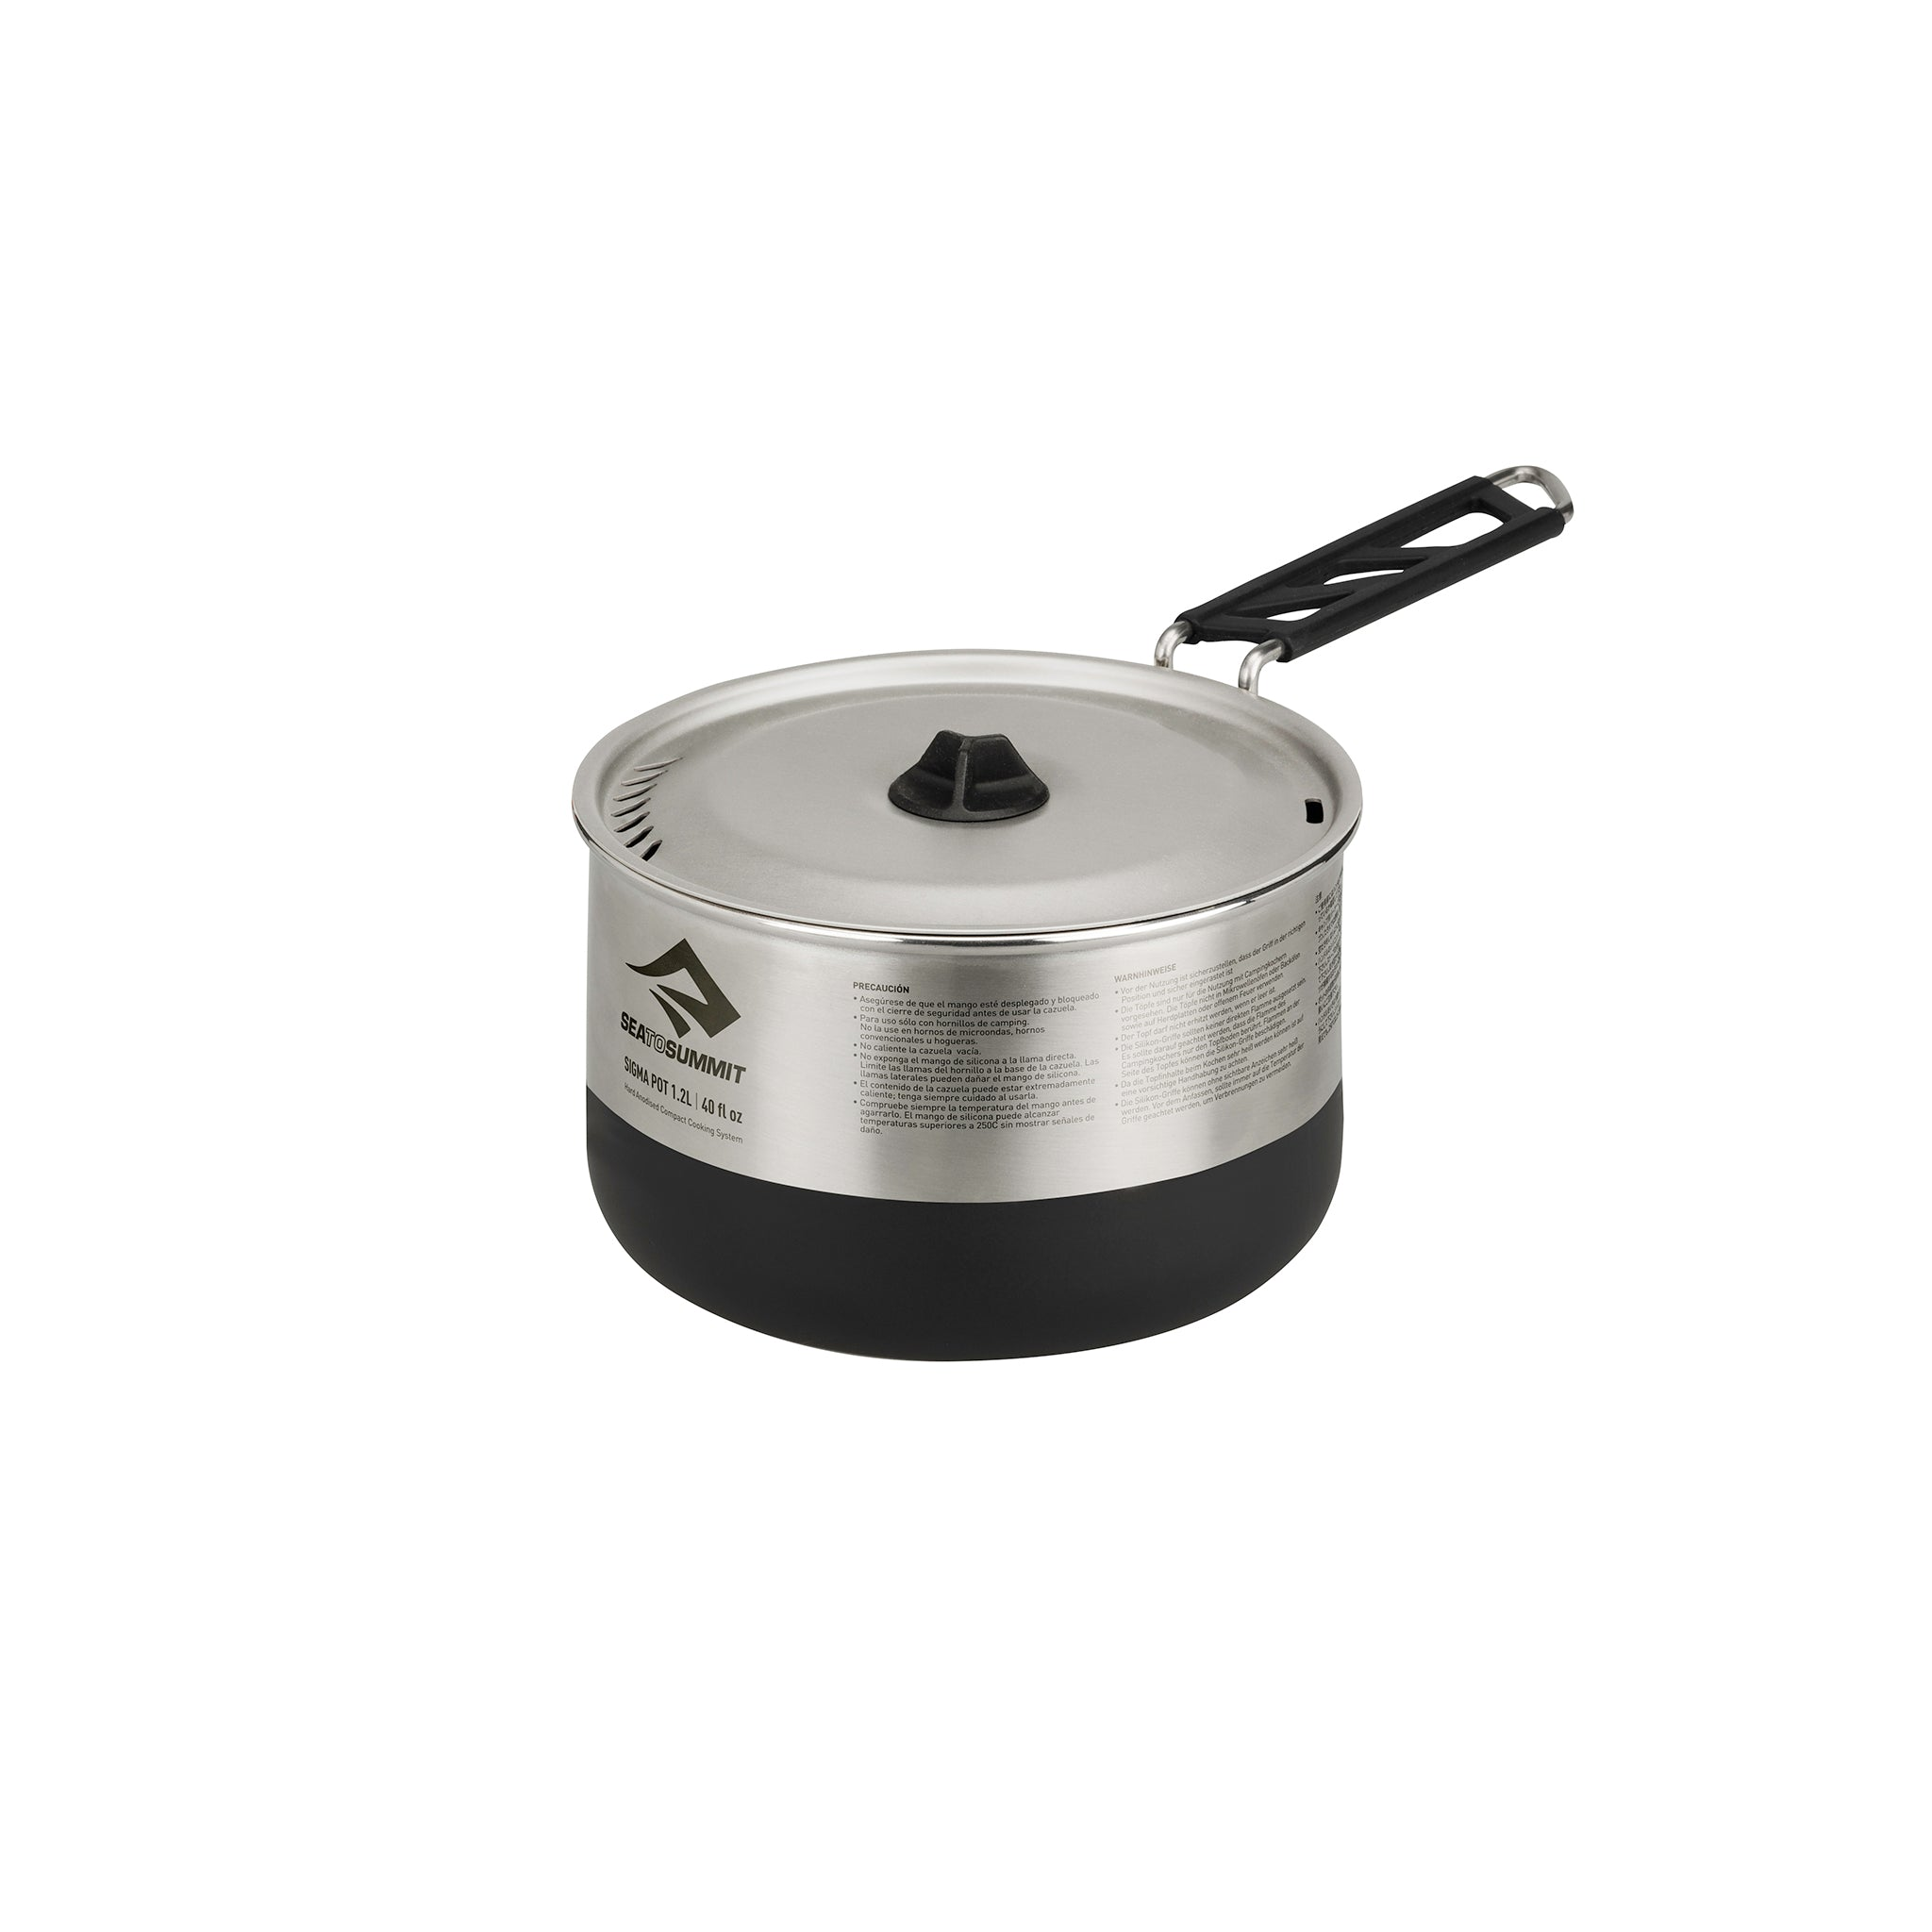 Sigma Stainless Steel Pot for Camping _ 1.2 Liter